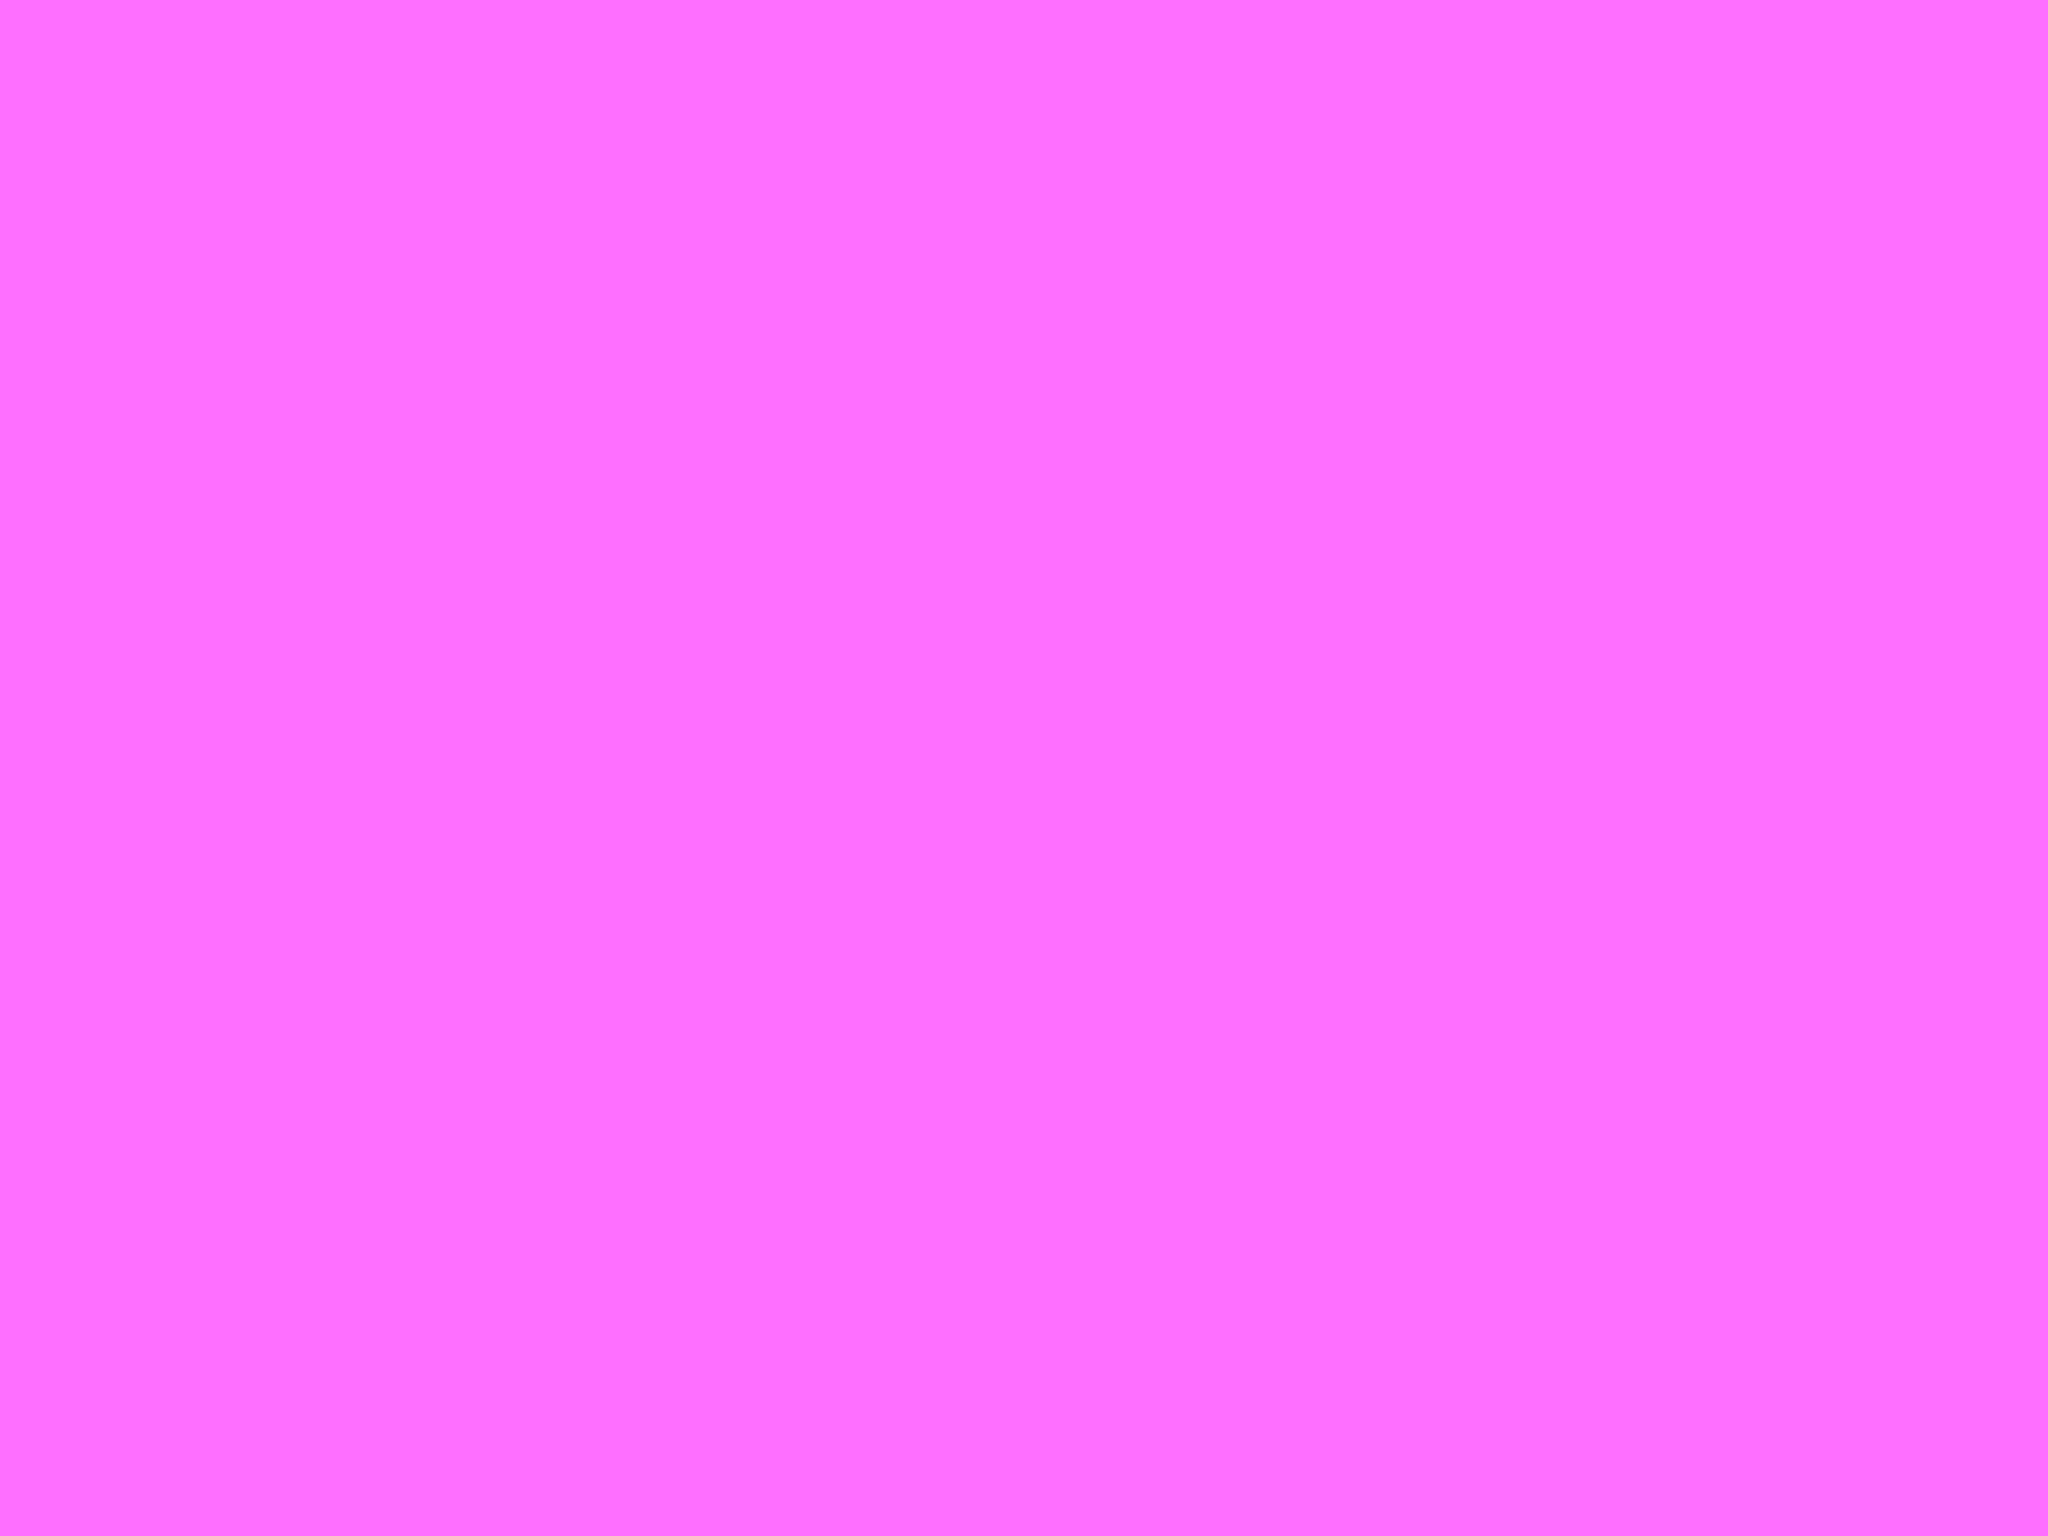 2048x1536 Ultra Pink Solid Color Background